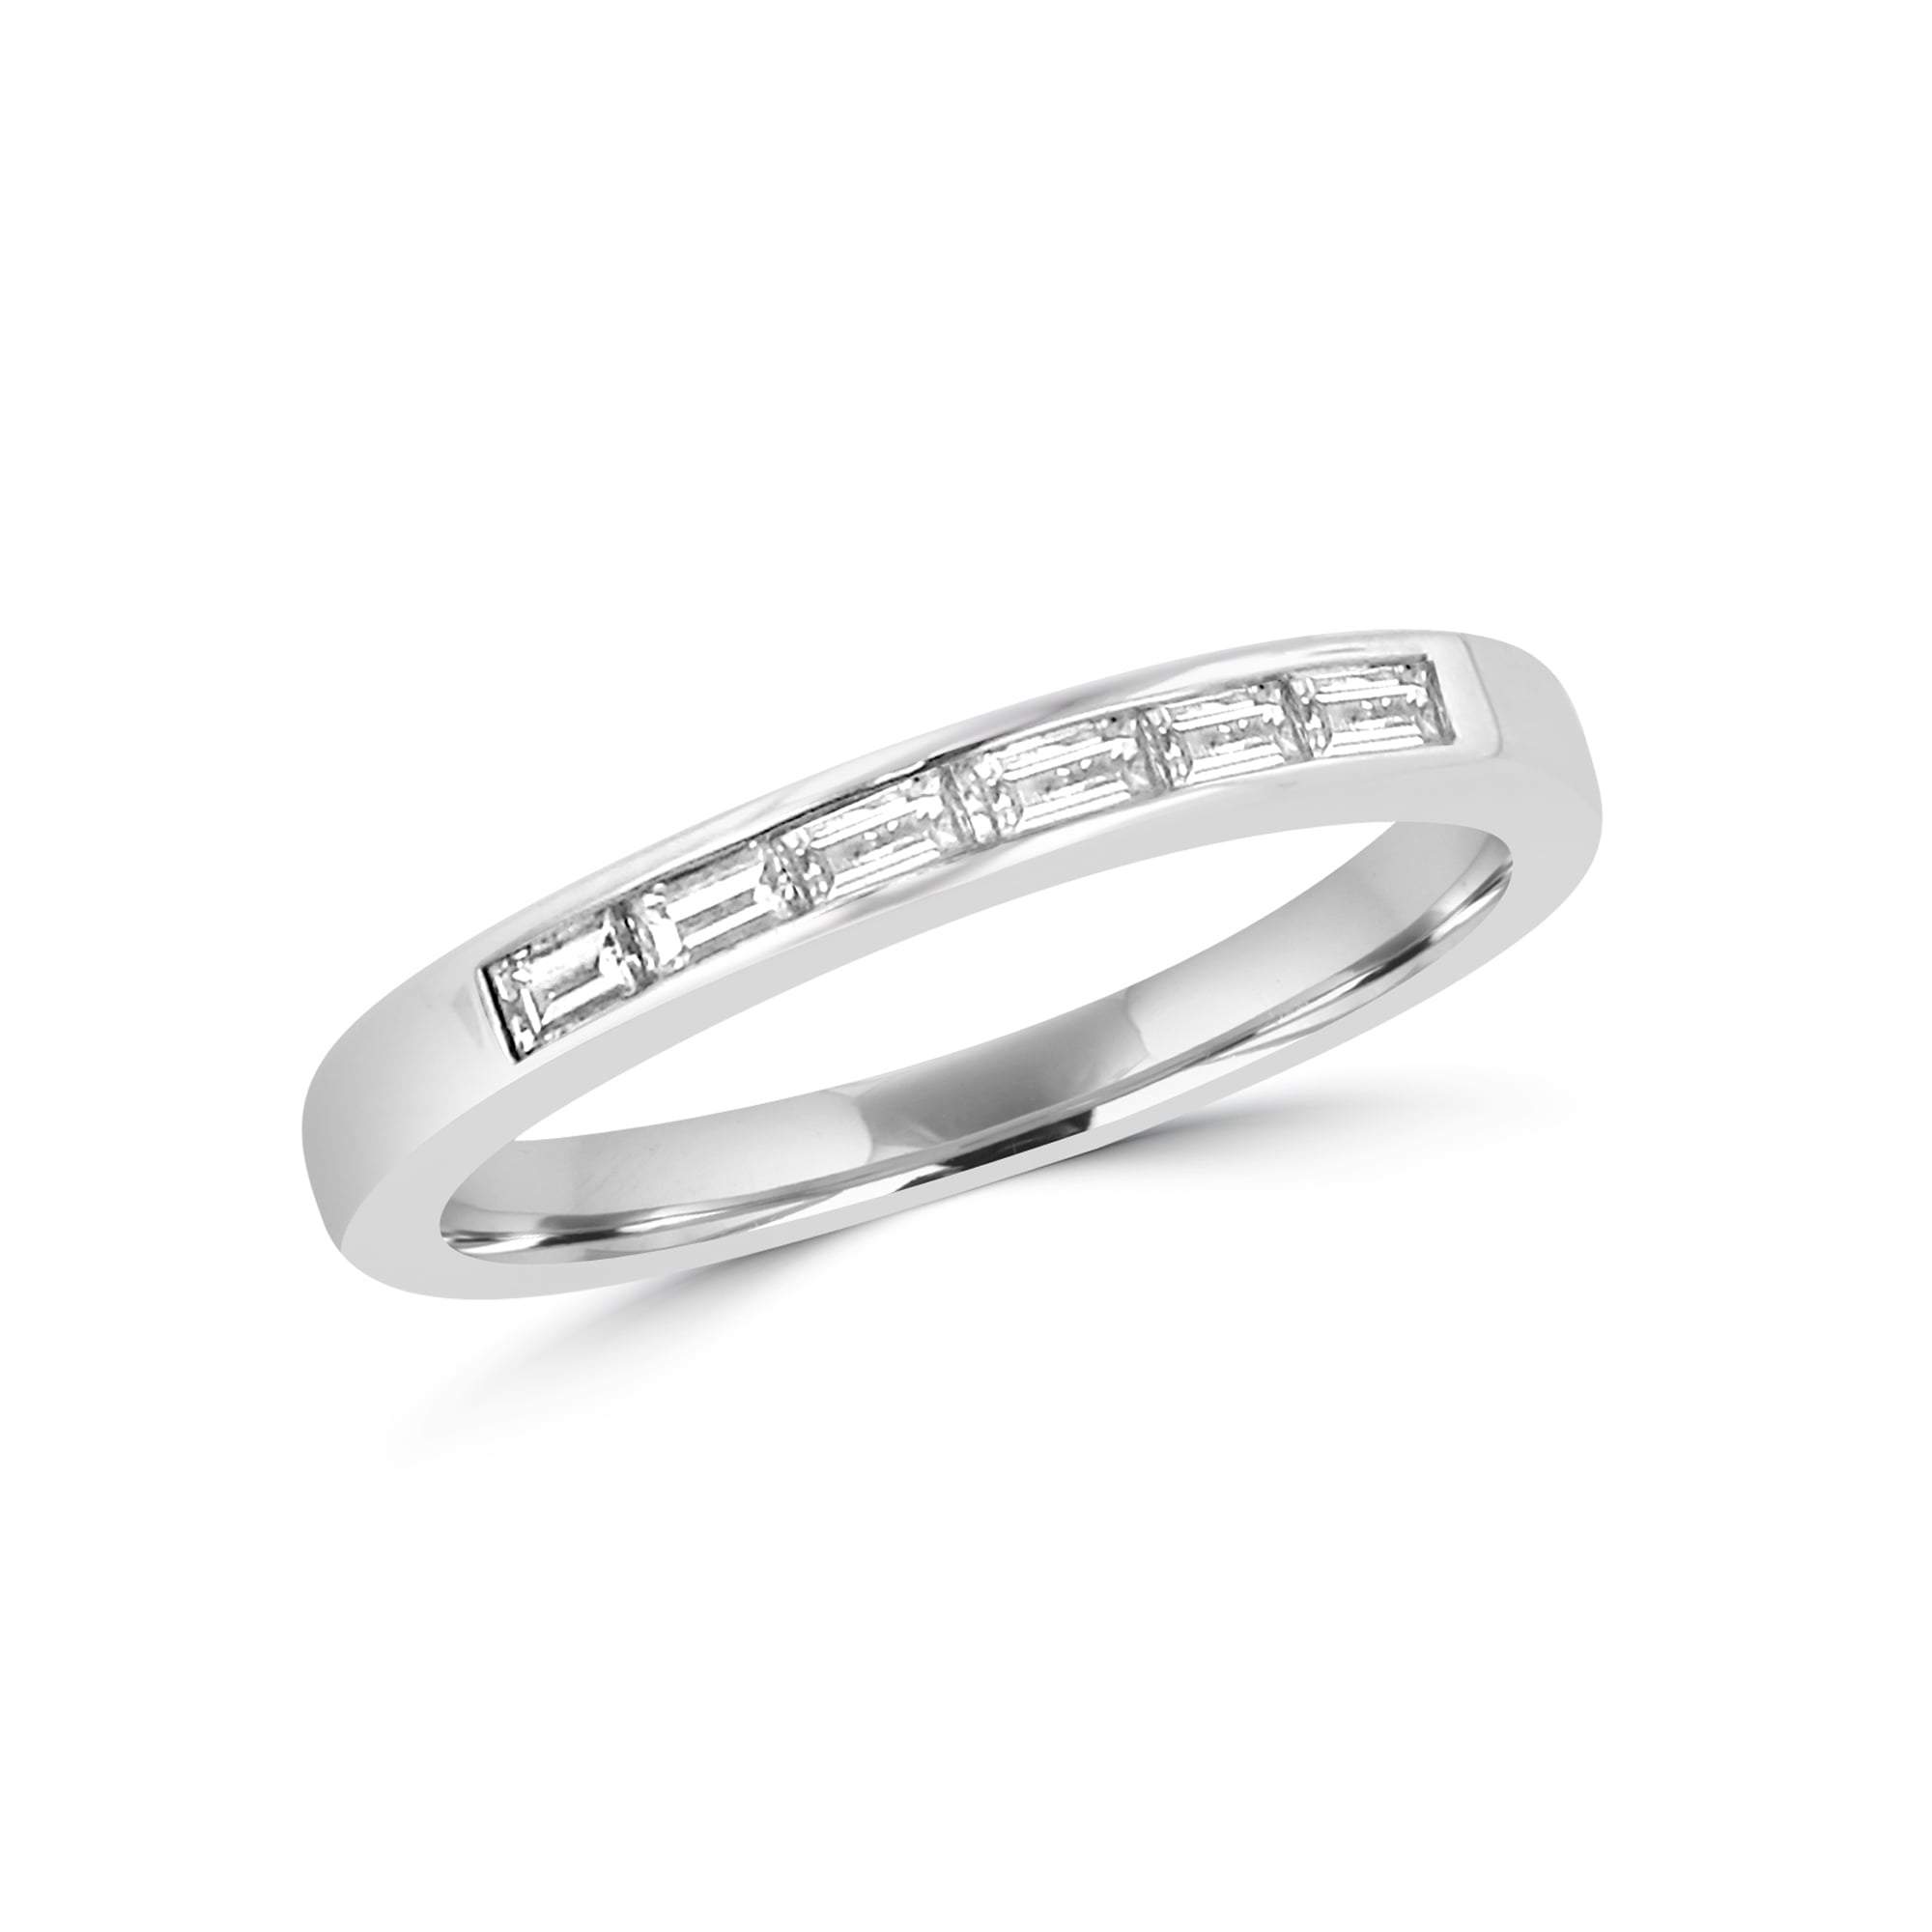 Avanti Six Baguette Diamond Wedding Ring in 18ct White Gold Womens